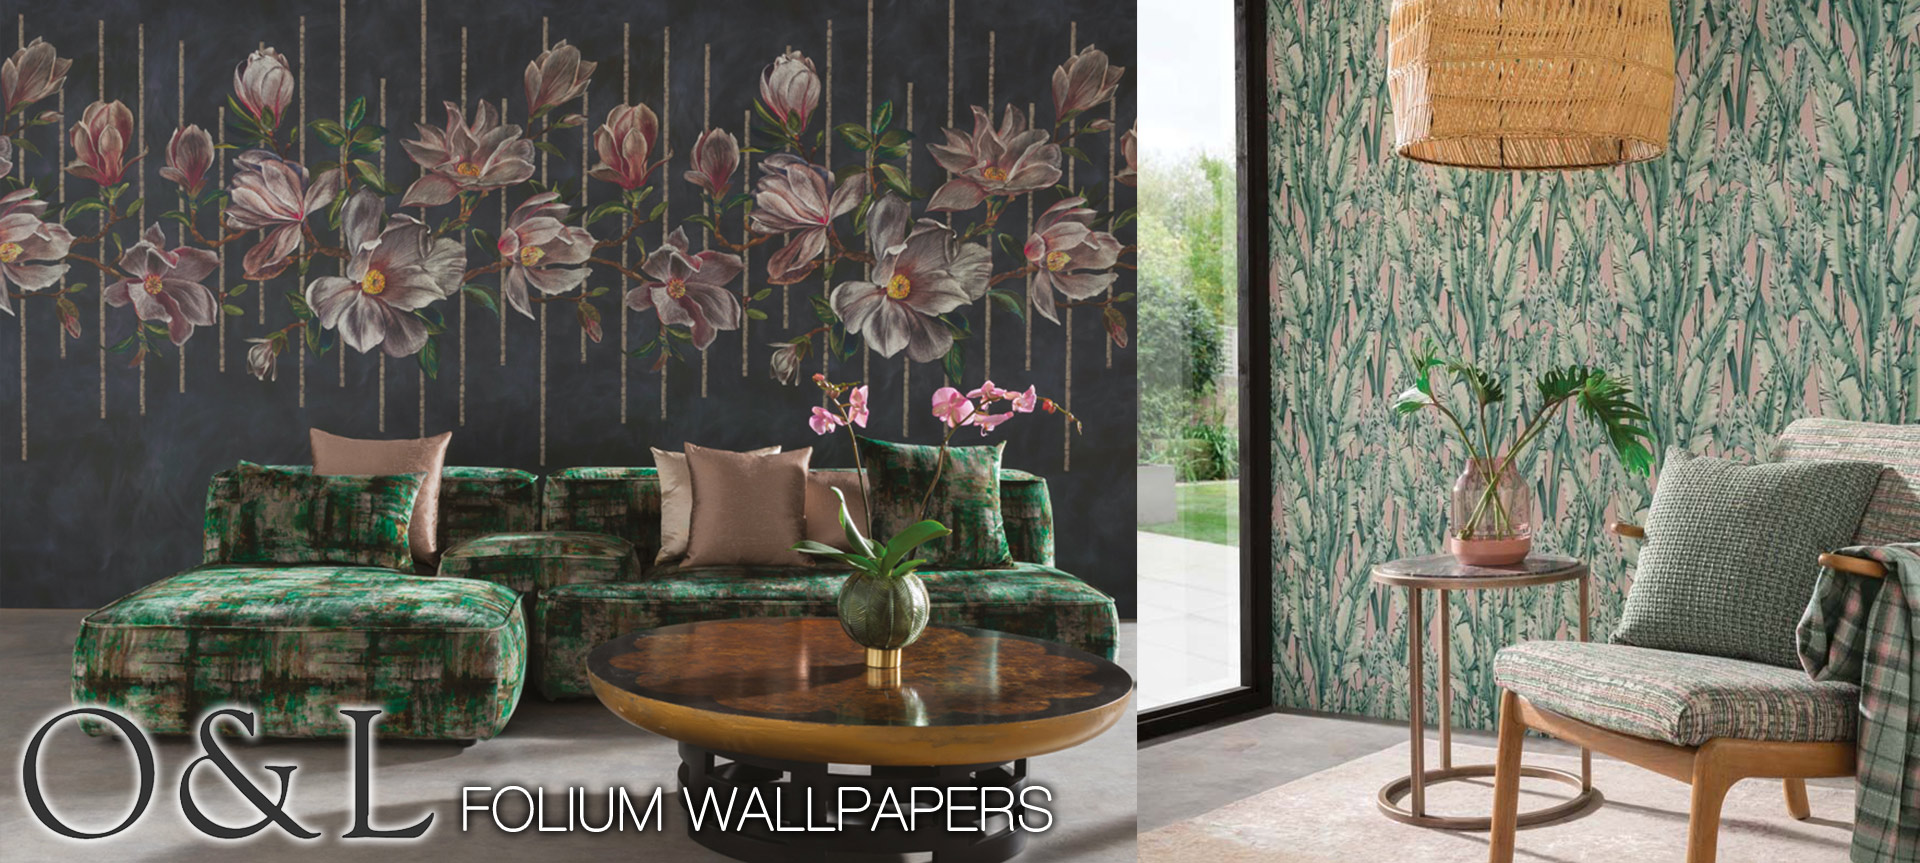 Shop Osborne and Little Folium Wallpapers